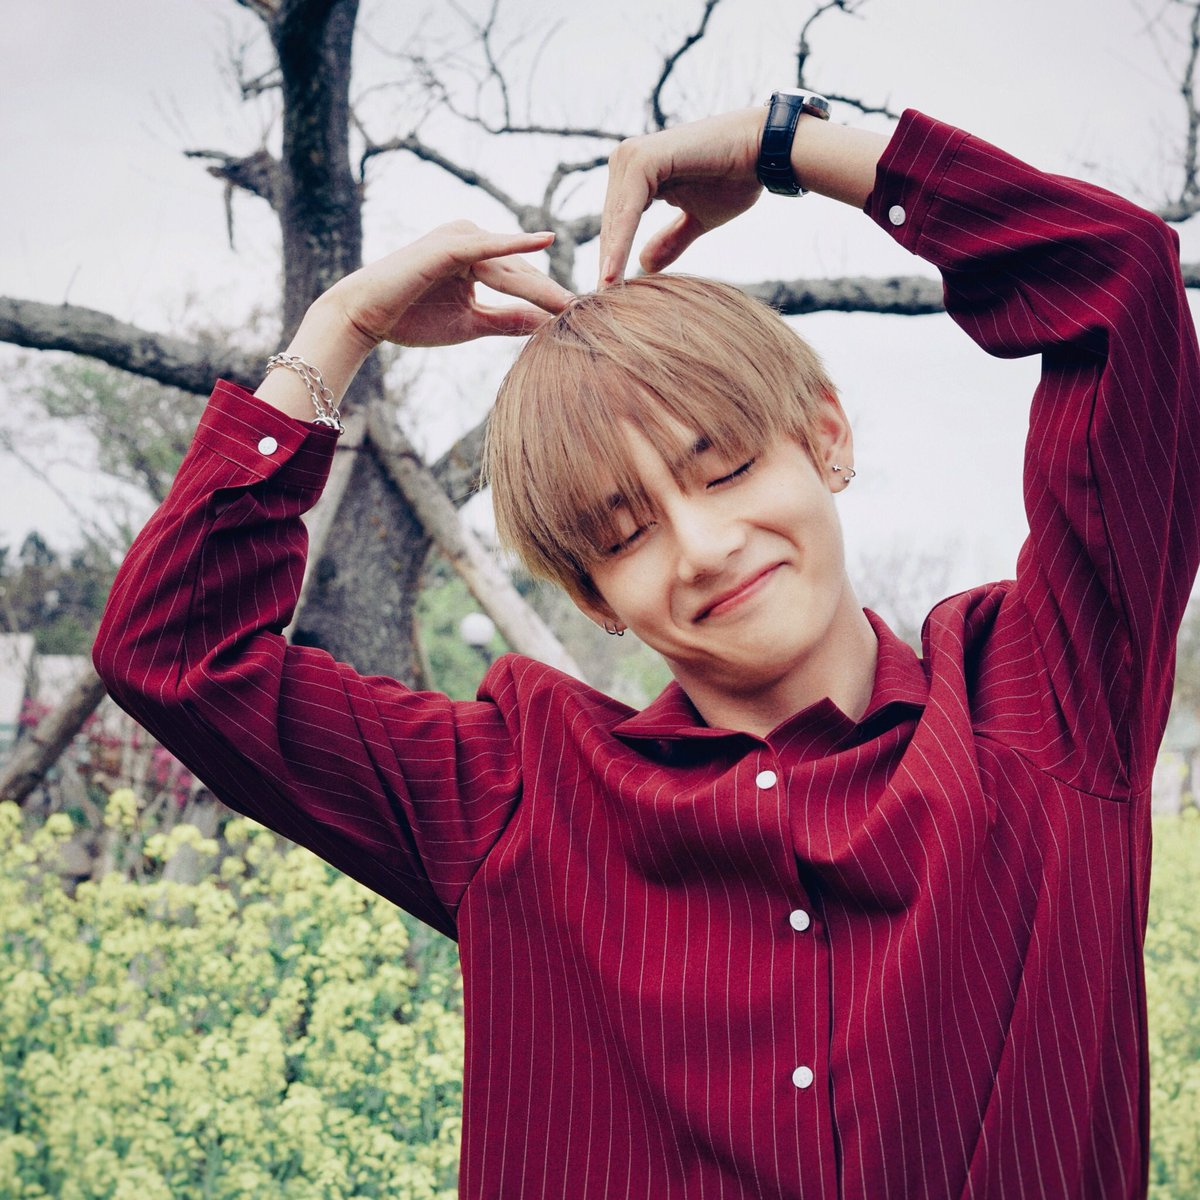 bts army, bts tae, boys and aesthetic